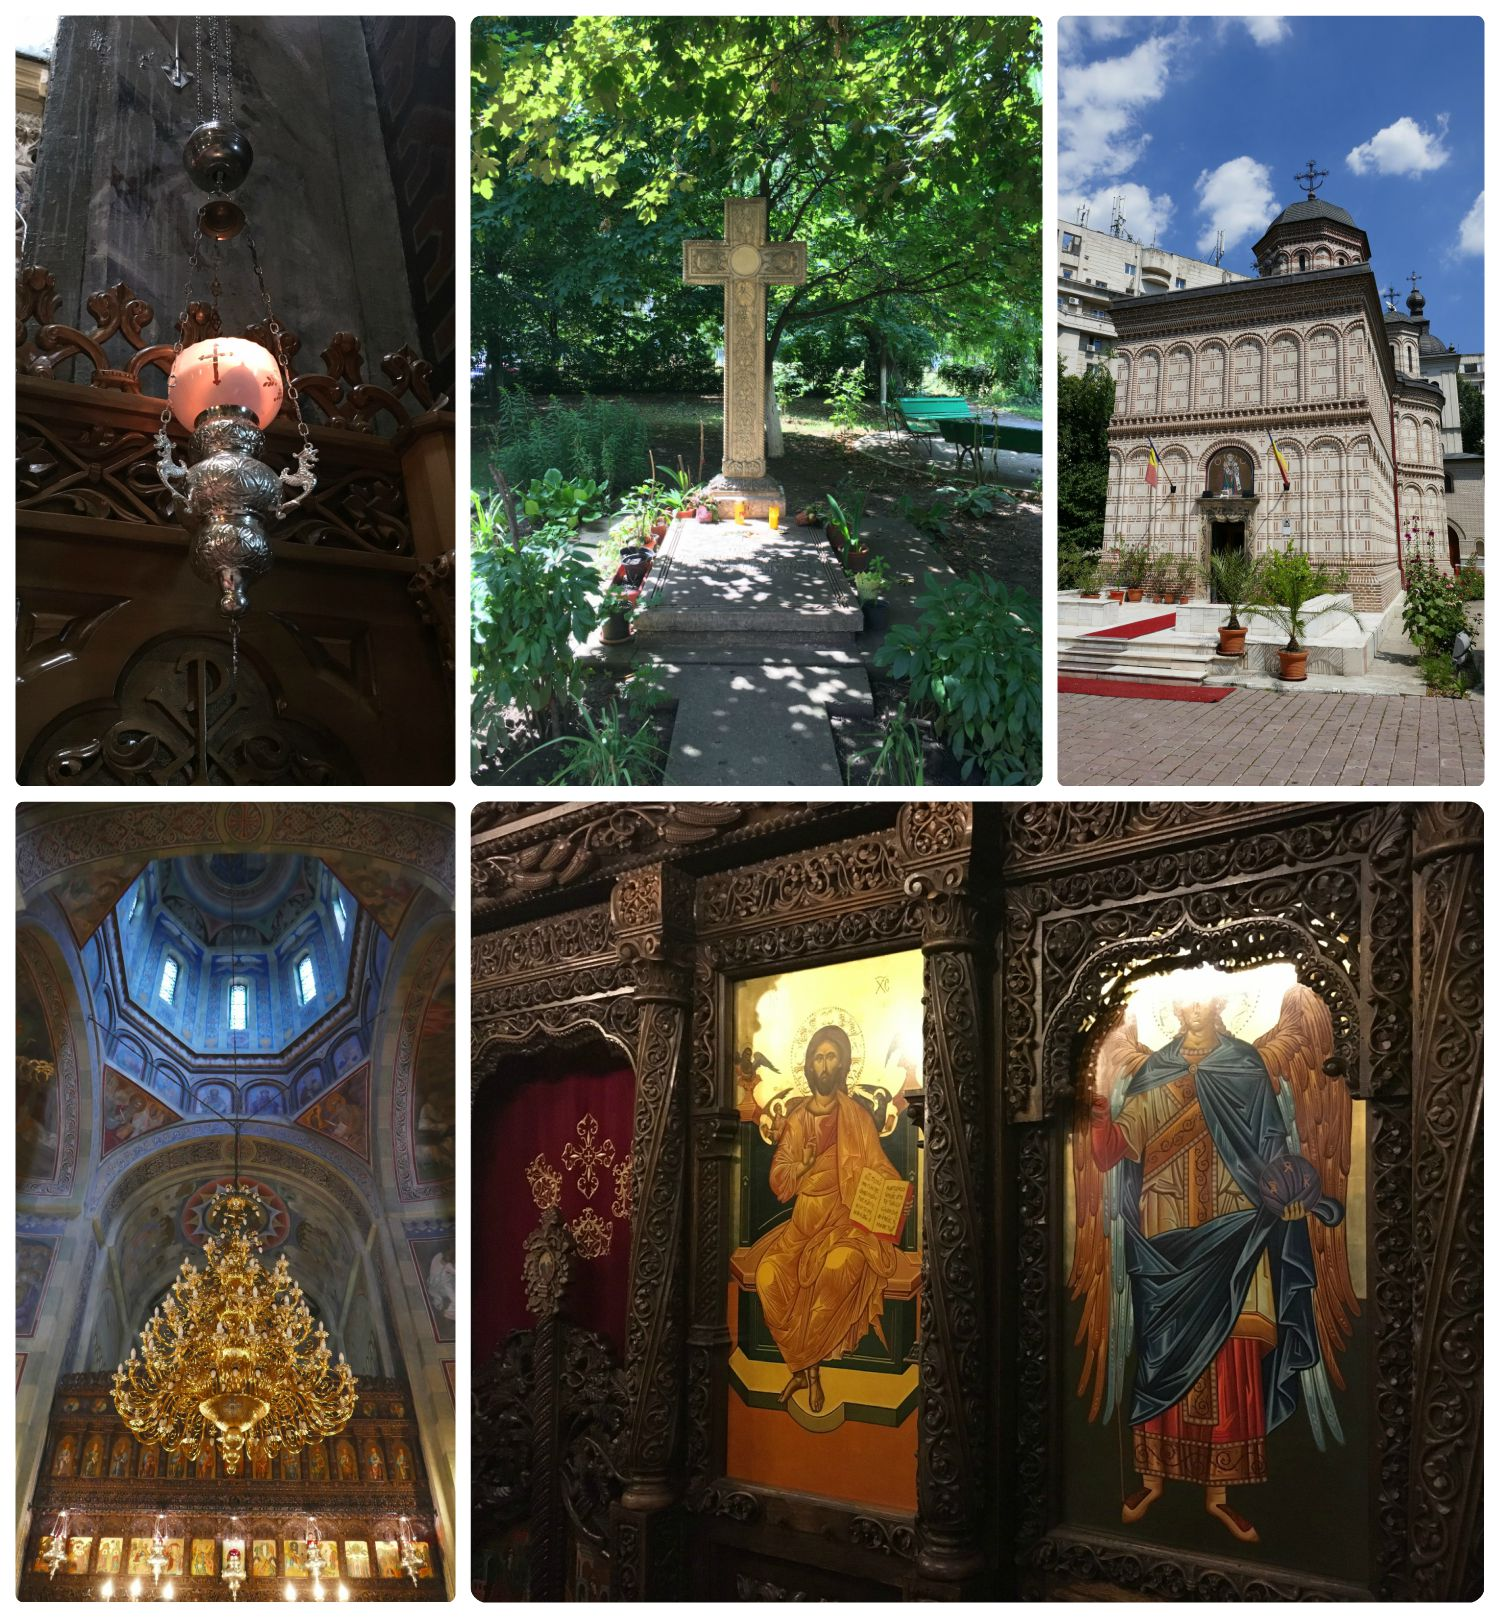 All images are of the Mihai Voda Monastery. Clockwise (from the top): Lamps like these can be seen in many of the monasteries in Bucharest, under a tree in the garden was a cross, the exterior of Mihai Voda Monastery, the wood work inside the monastery was amazing in its detail, the chandelier hanging from the dome was breathtaking.